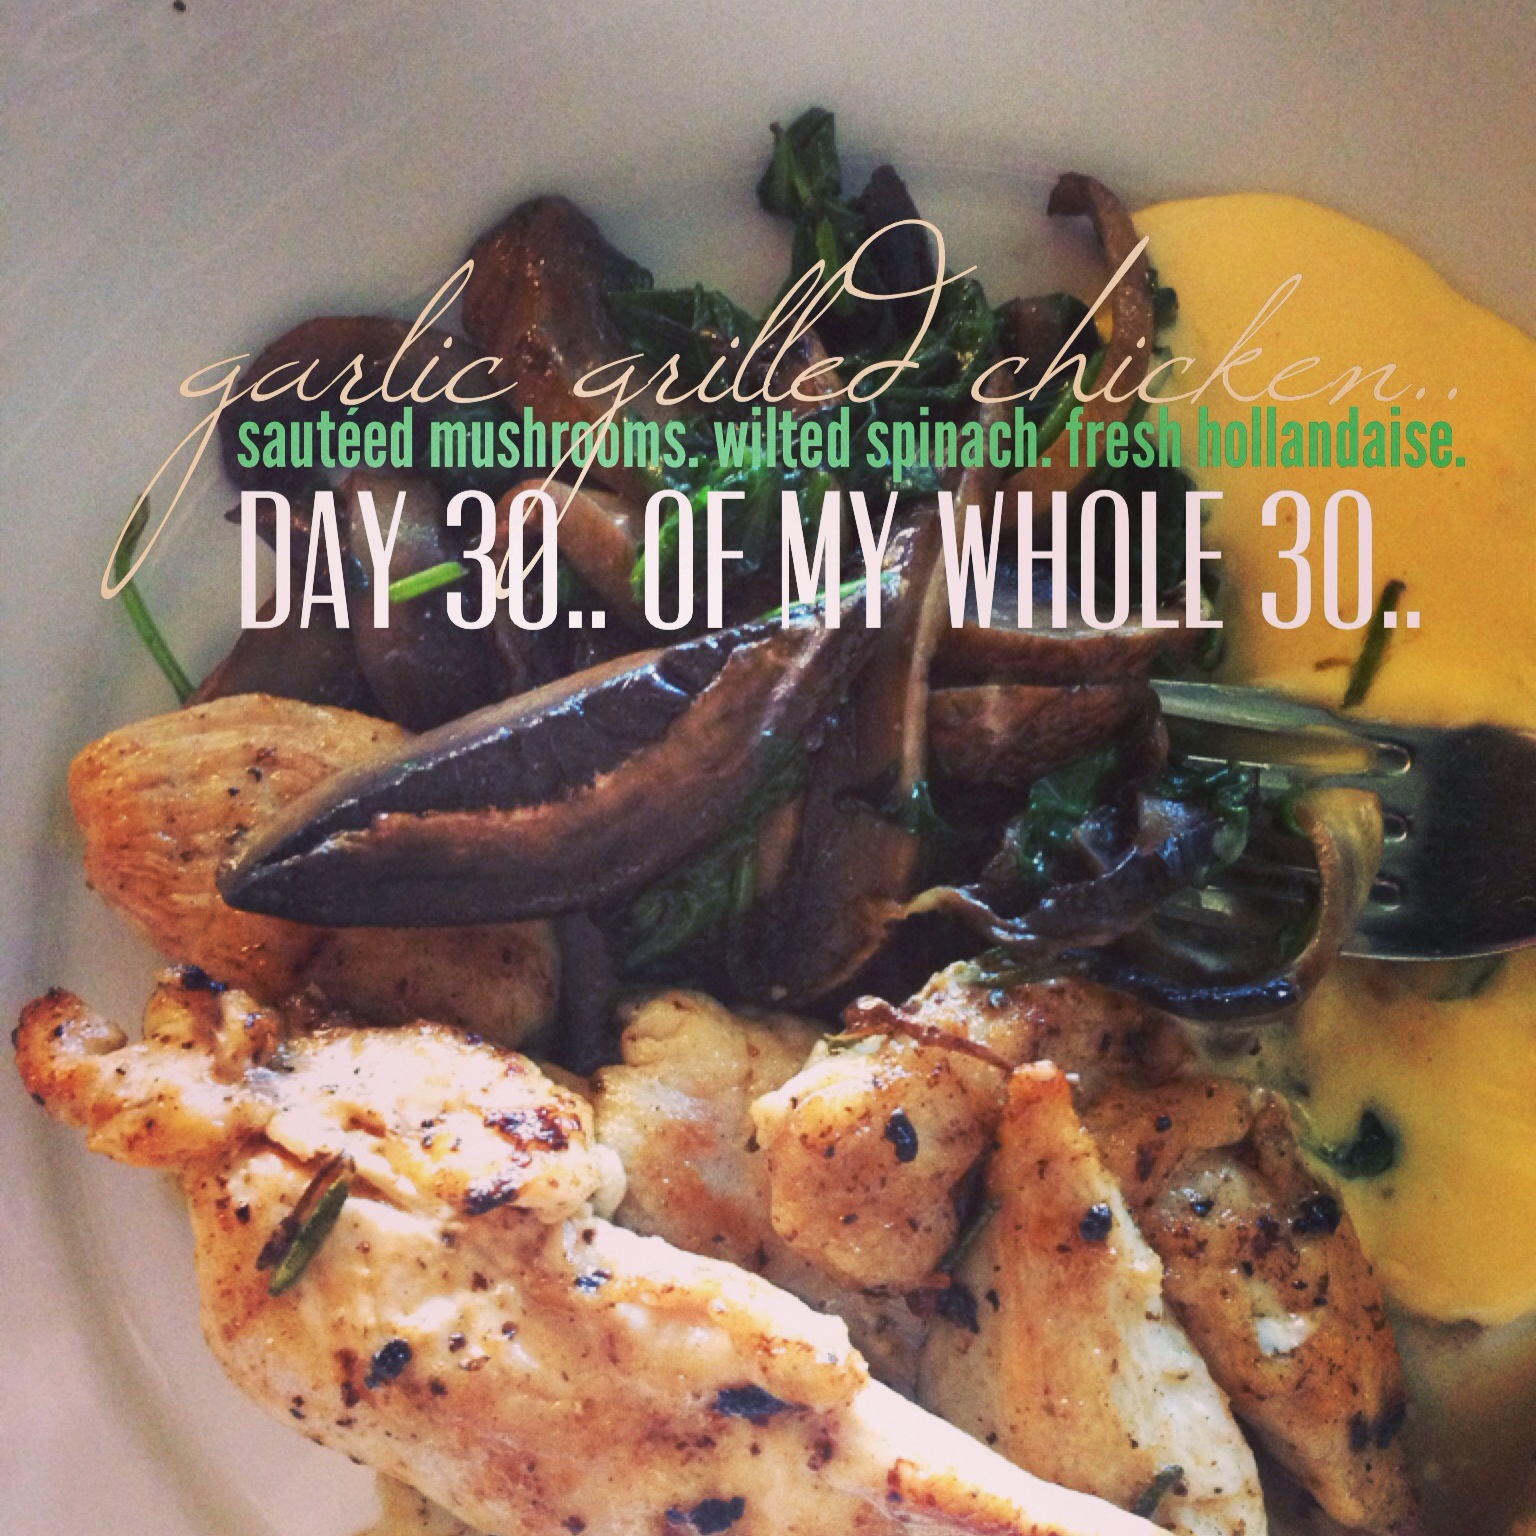 Day 30 | Whole 30 | LAST DAY!!